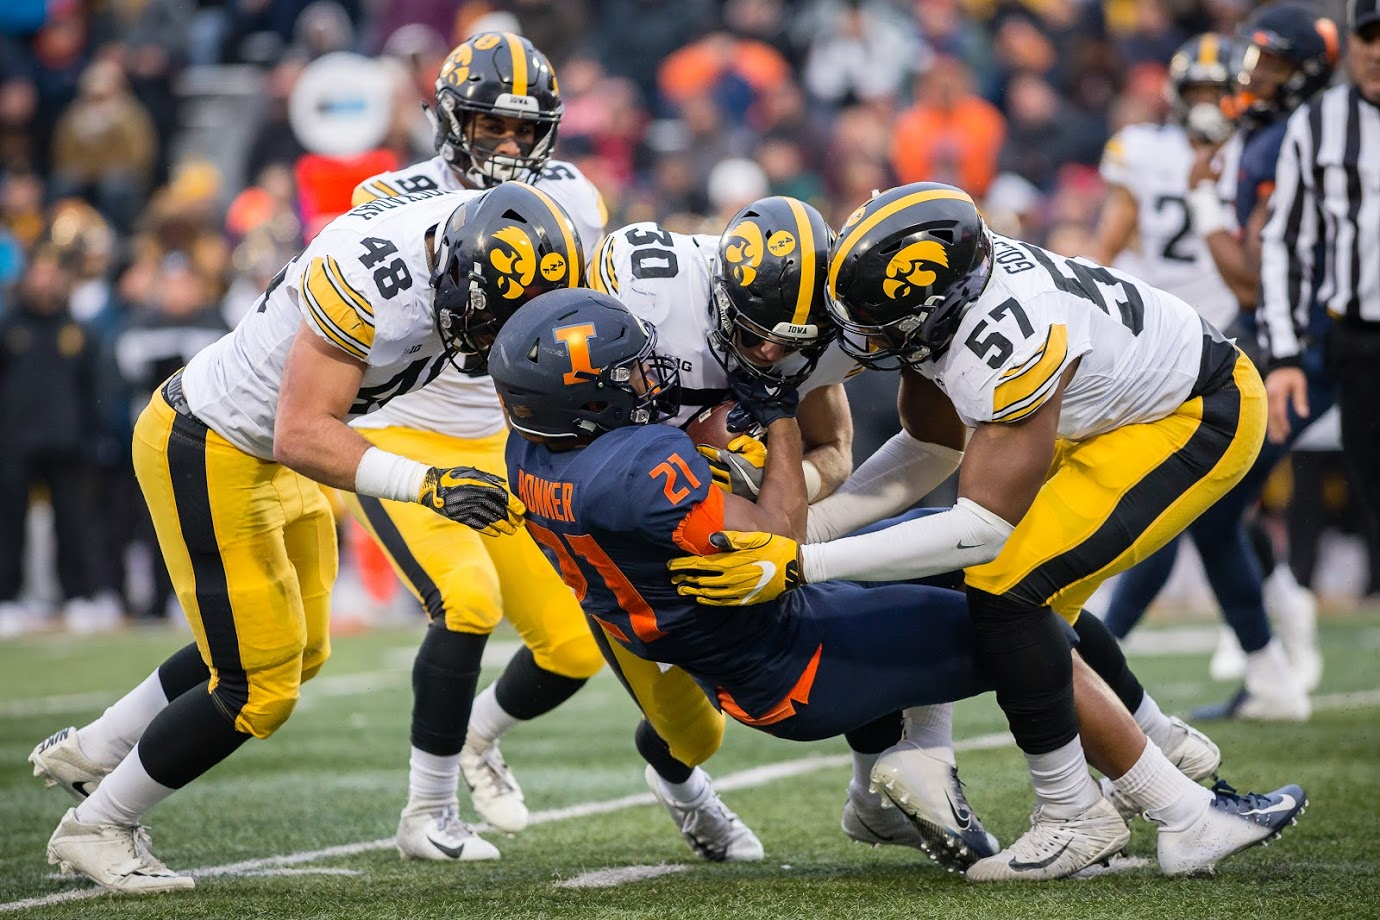 Illinois running back Ra'Von Bonner is tackled during Illinois' game against Iowa at Memorial Stadium on Nov. 17, 2018. The Illini will face the Hawkeyes Saturday after their 63-0 loss last year.